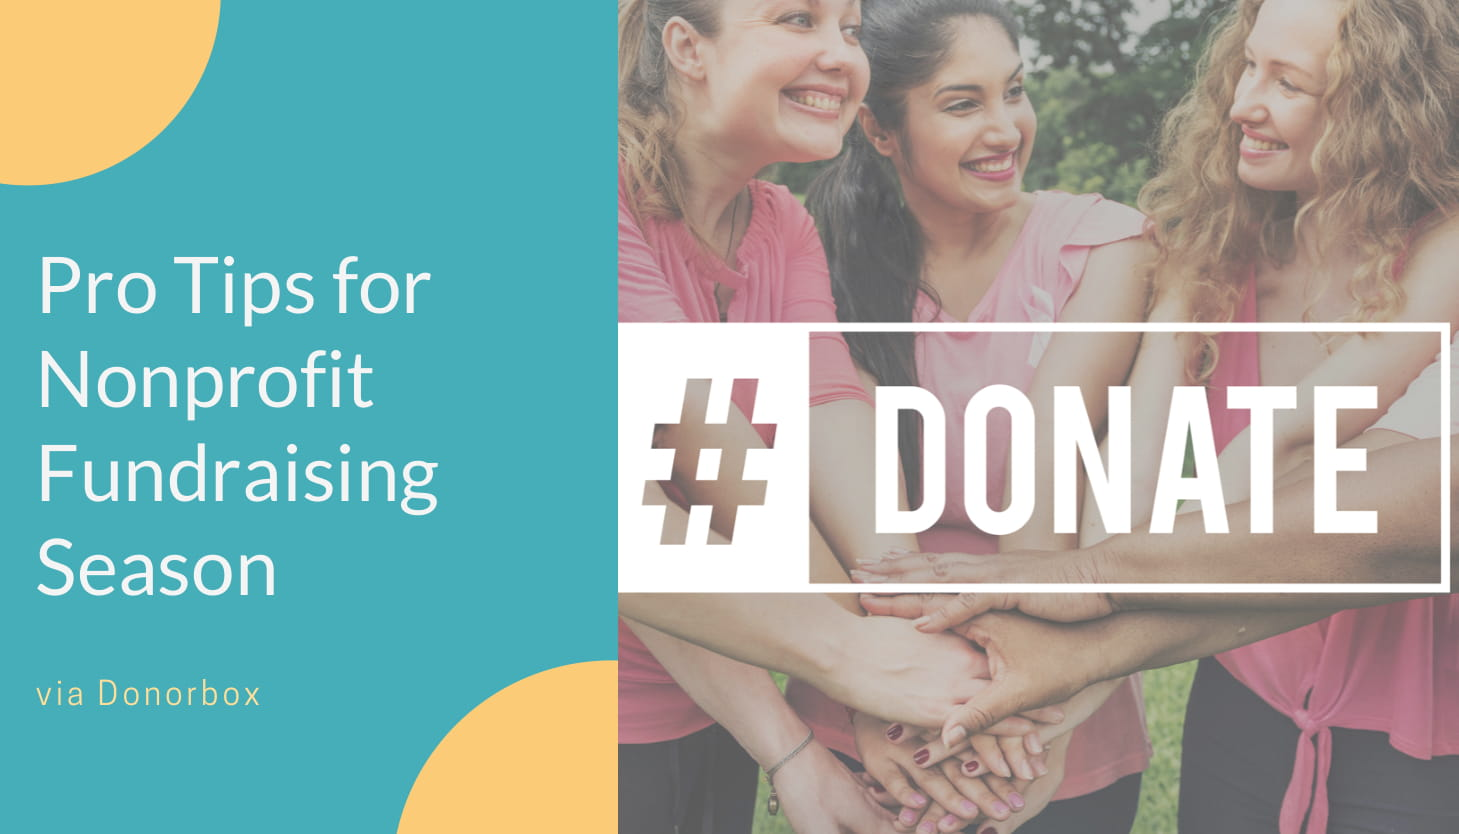 5 Helpful Tips for Getting the Most Out of Nonprofit Fundraising Season